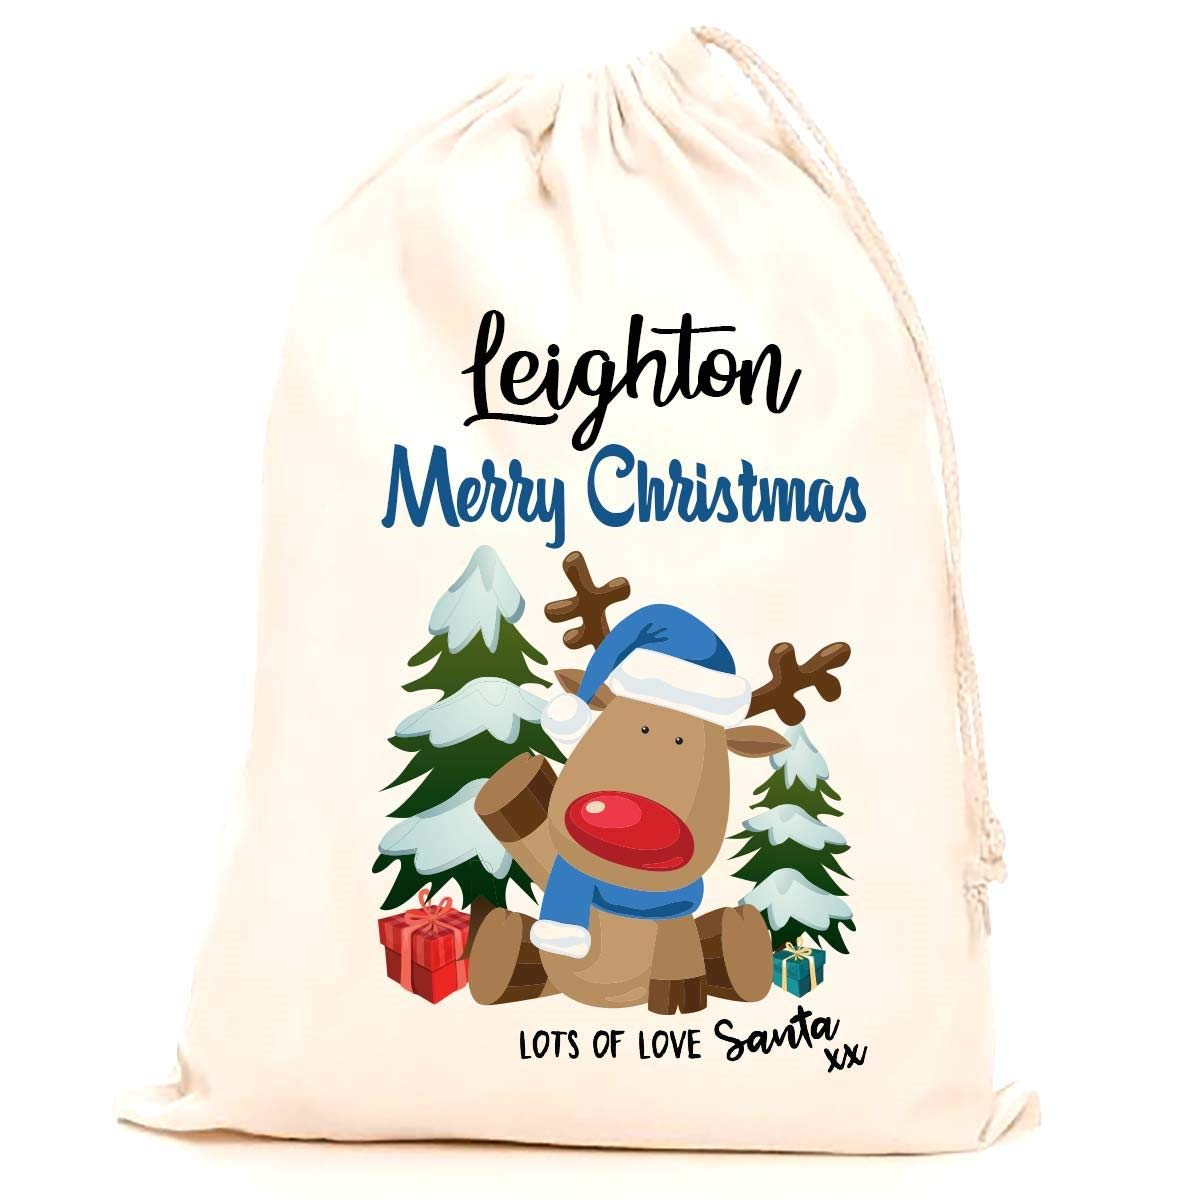 Treat Me Suite Leighton personalised name Christmas santa sack, stocking printed with a blue reindeer (75x50cm) 100% Cotton Large. Children, Kids, making it the perfect keepsake xmas gift/present. CS Printing Limited